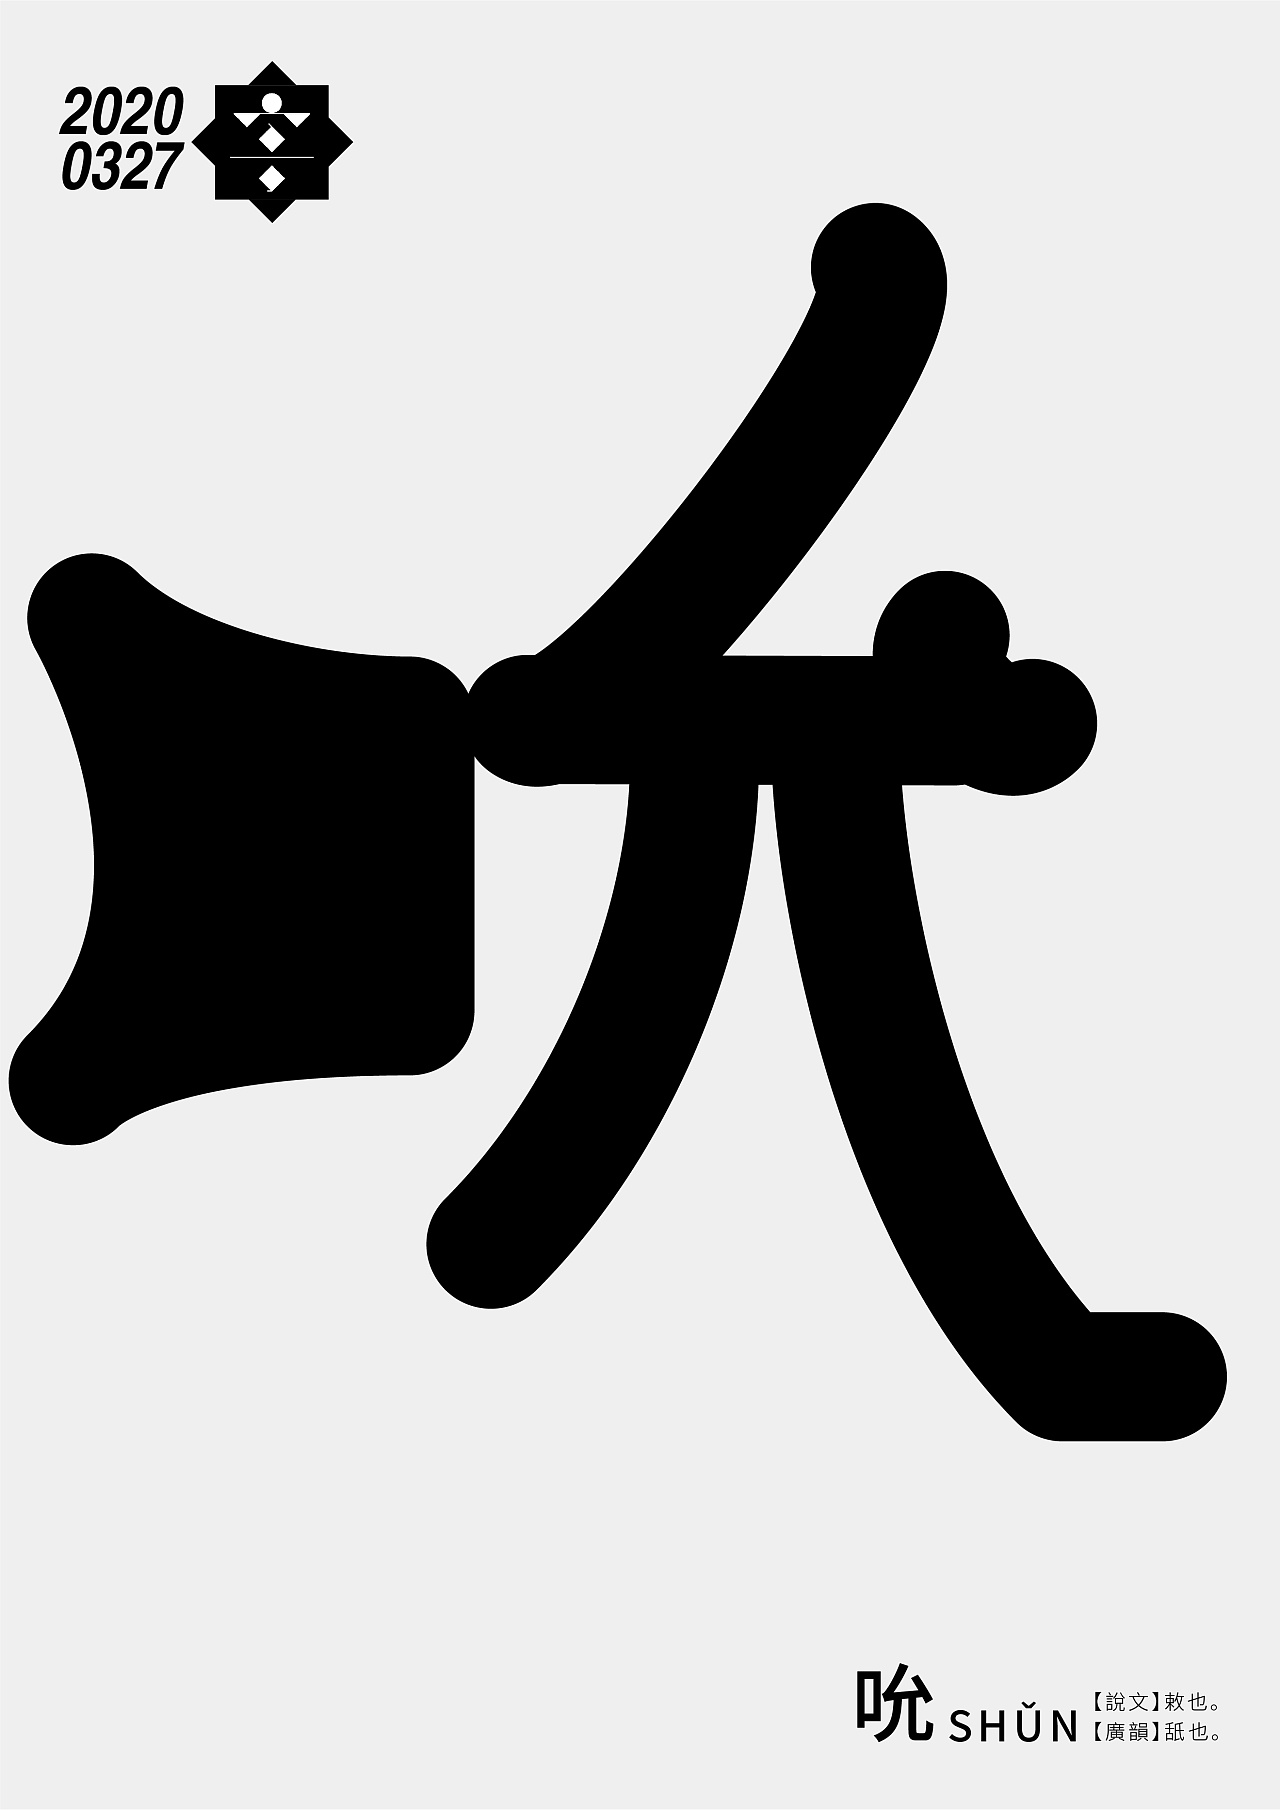 Chinese Creative Font Design-Simple lines make up not simple fonts.